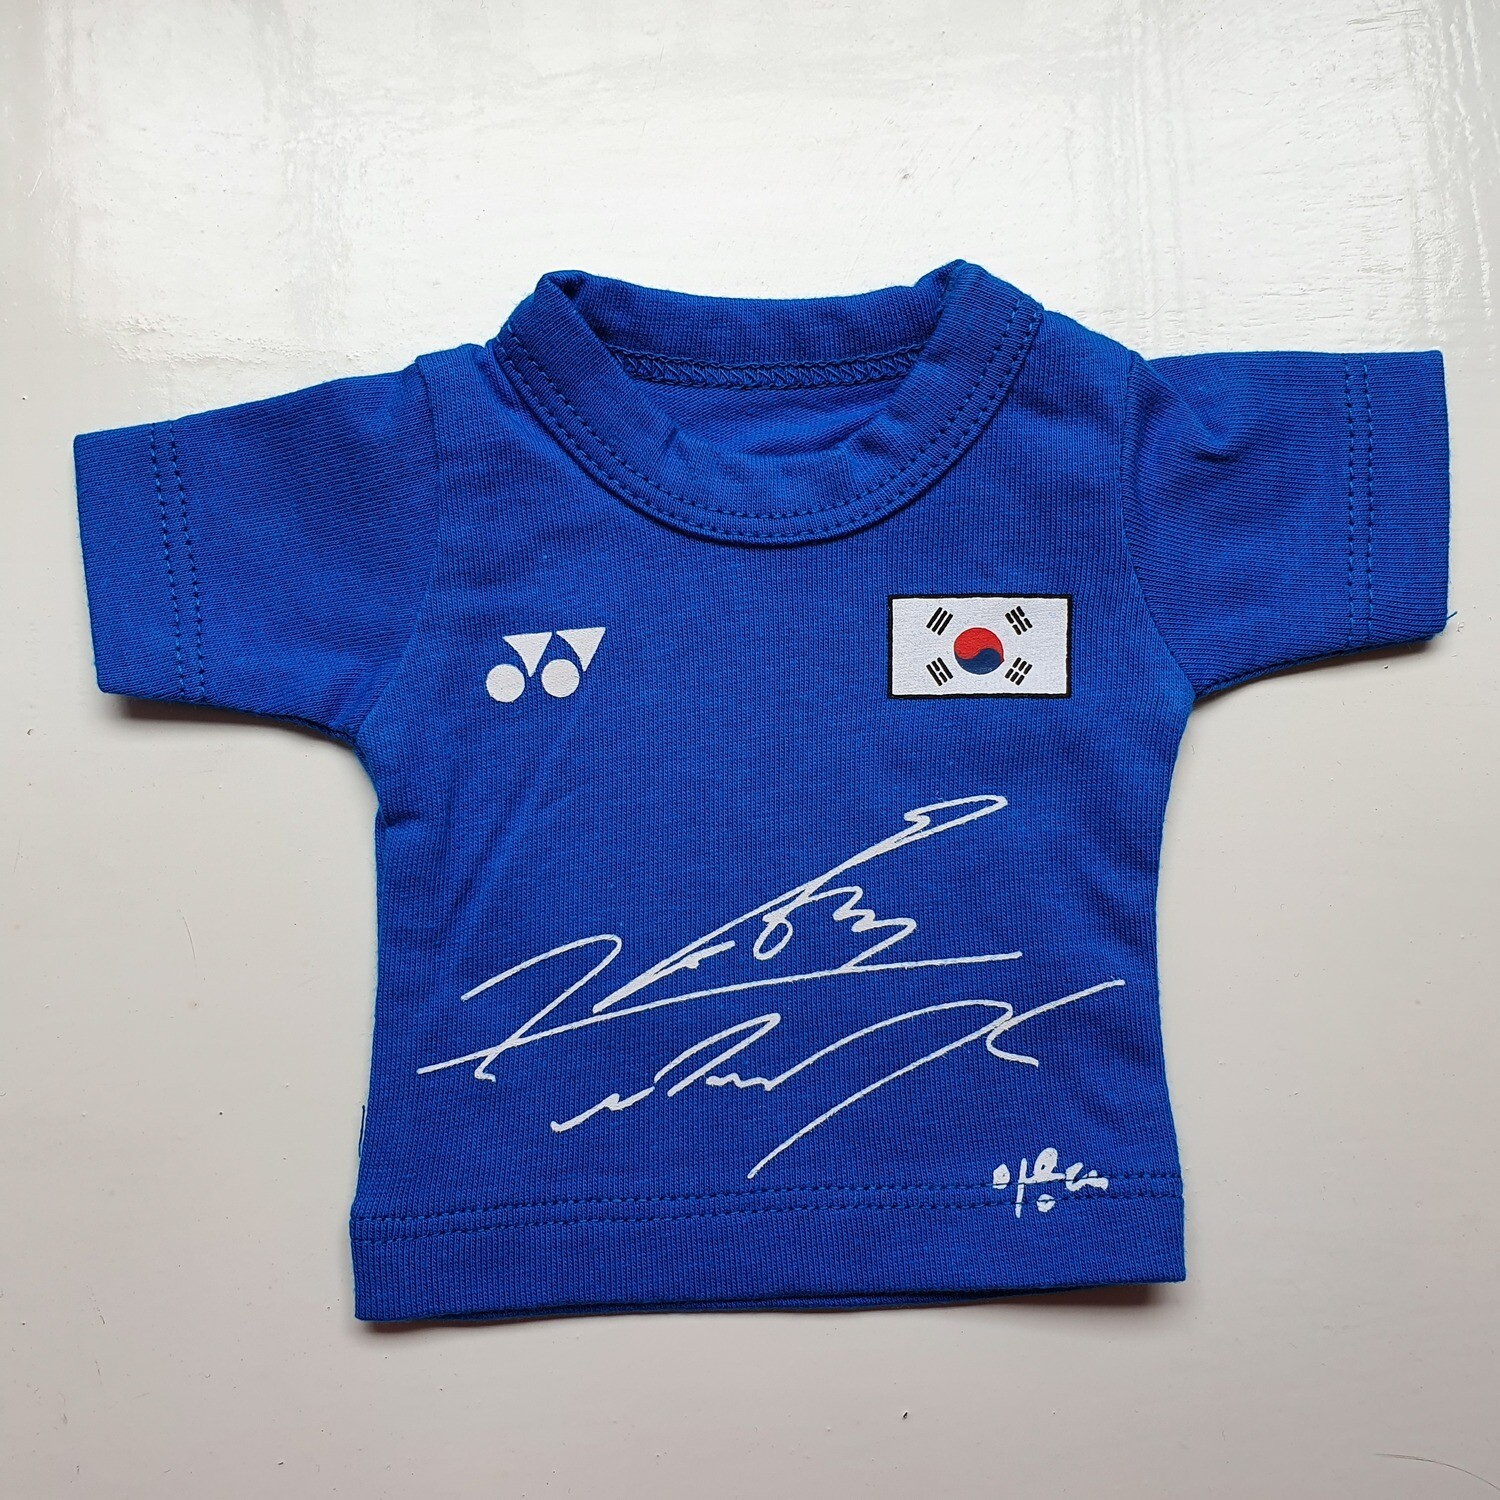 Yonex Legends Mini Shirt - Lee Yong Dae